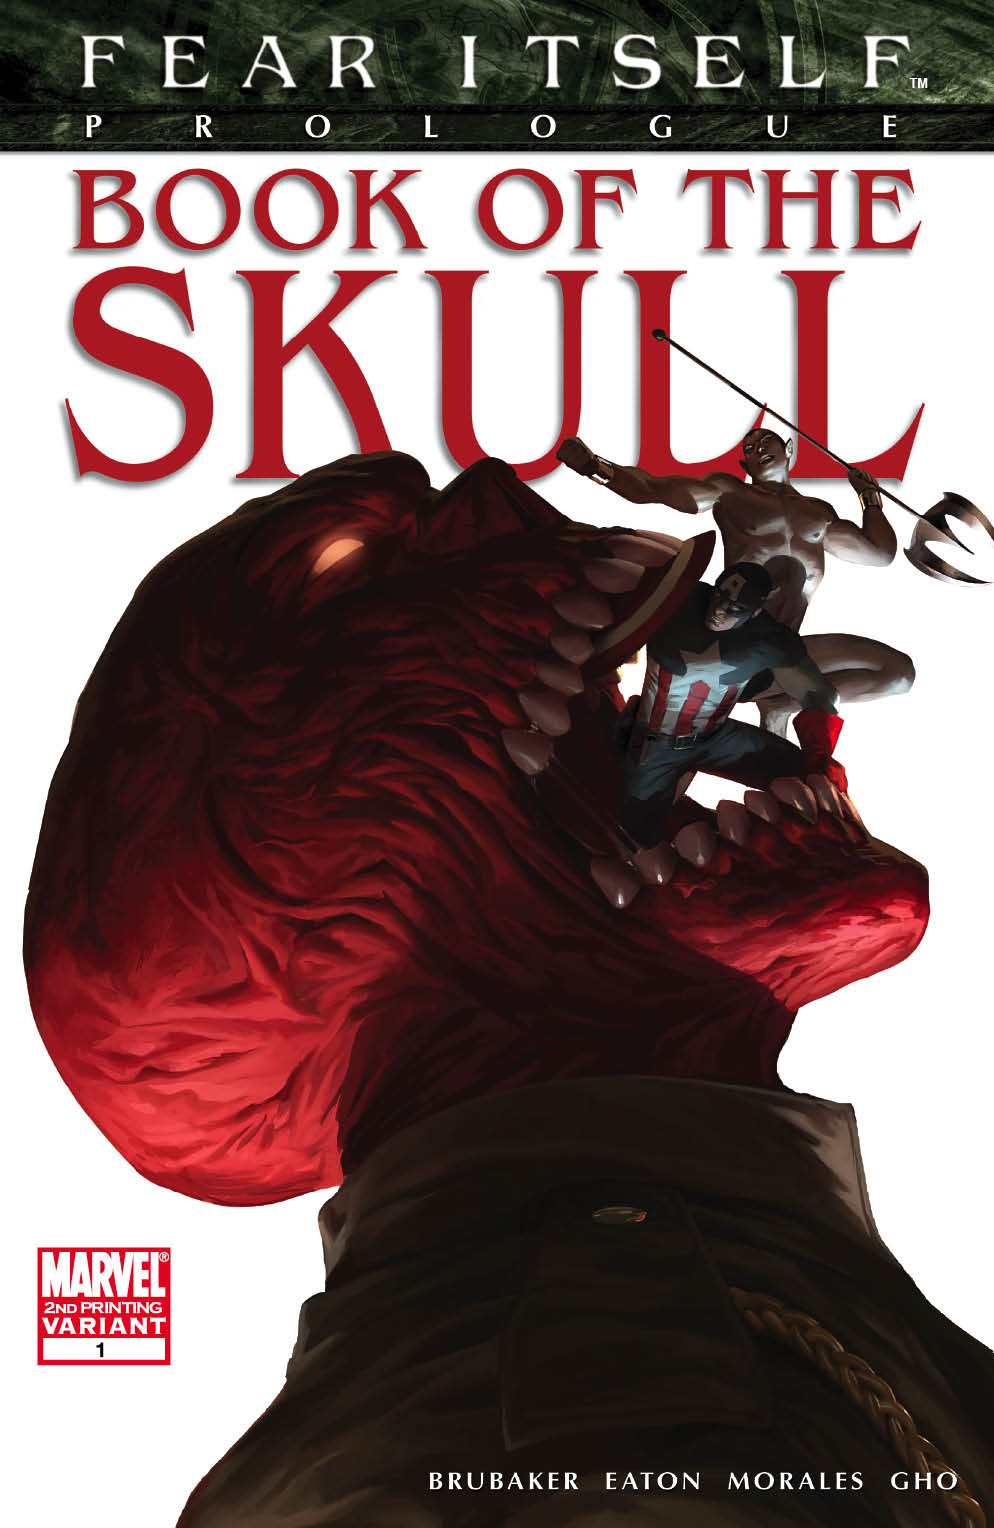 FEARITSELF_BOOKOFTHESKULL_1_Second FEAR ITSELF returns with two new printings